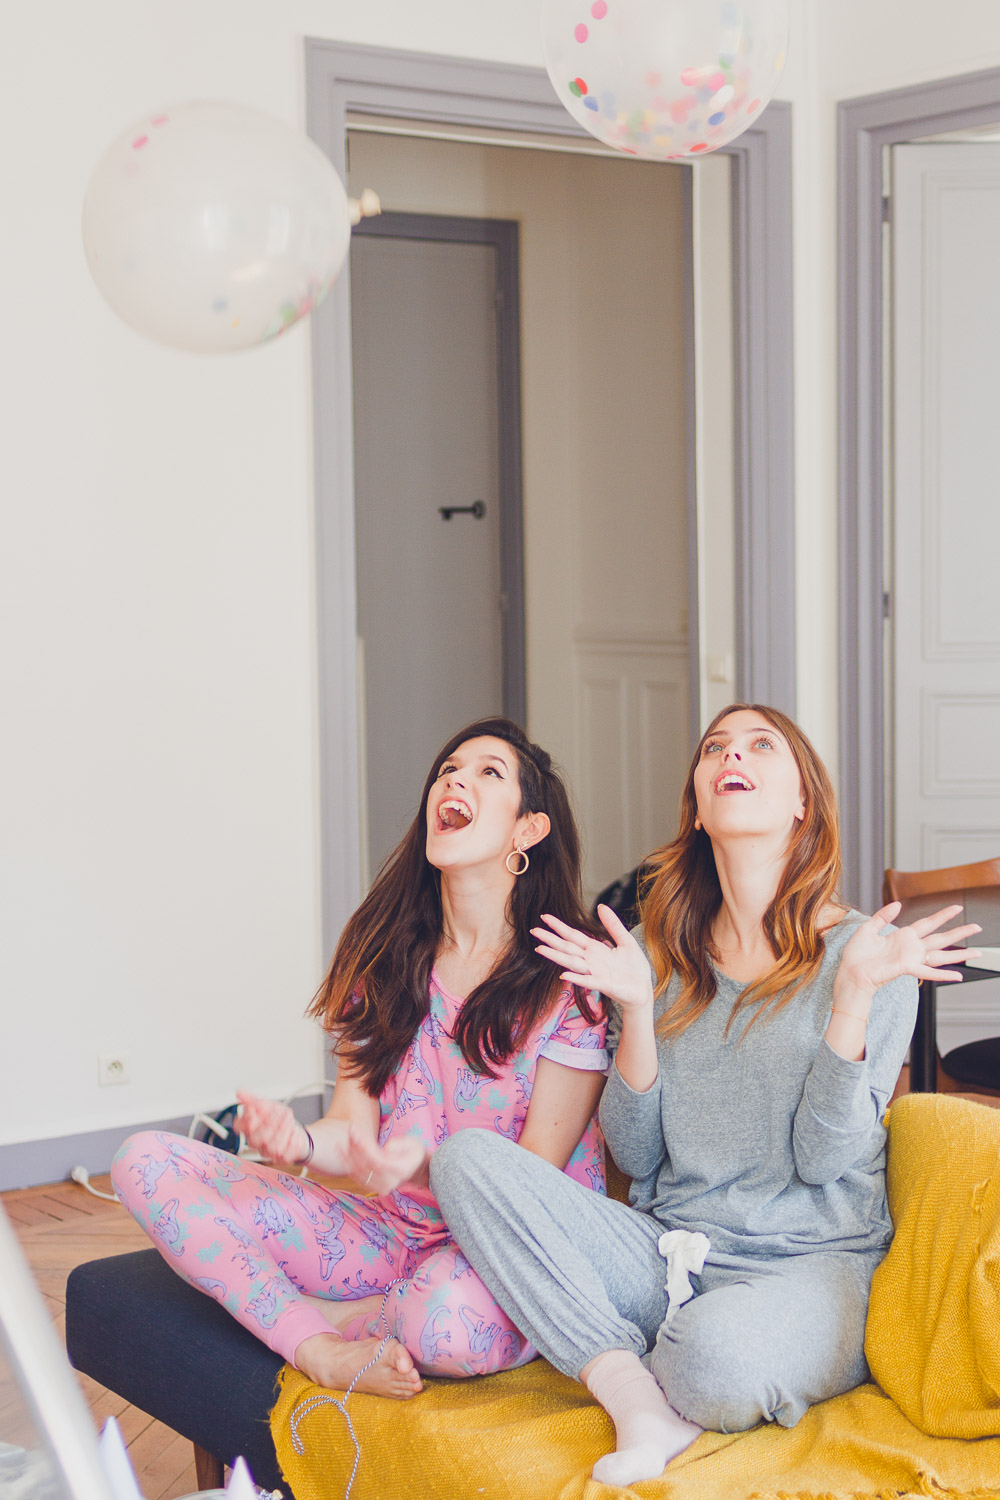 Girls pyjama party in their Sweet Inn Parisian apartment Ponthieu I